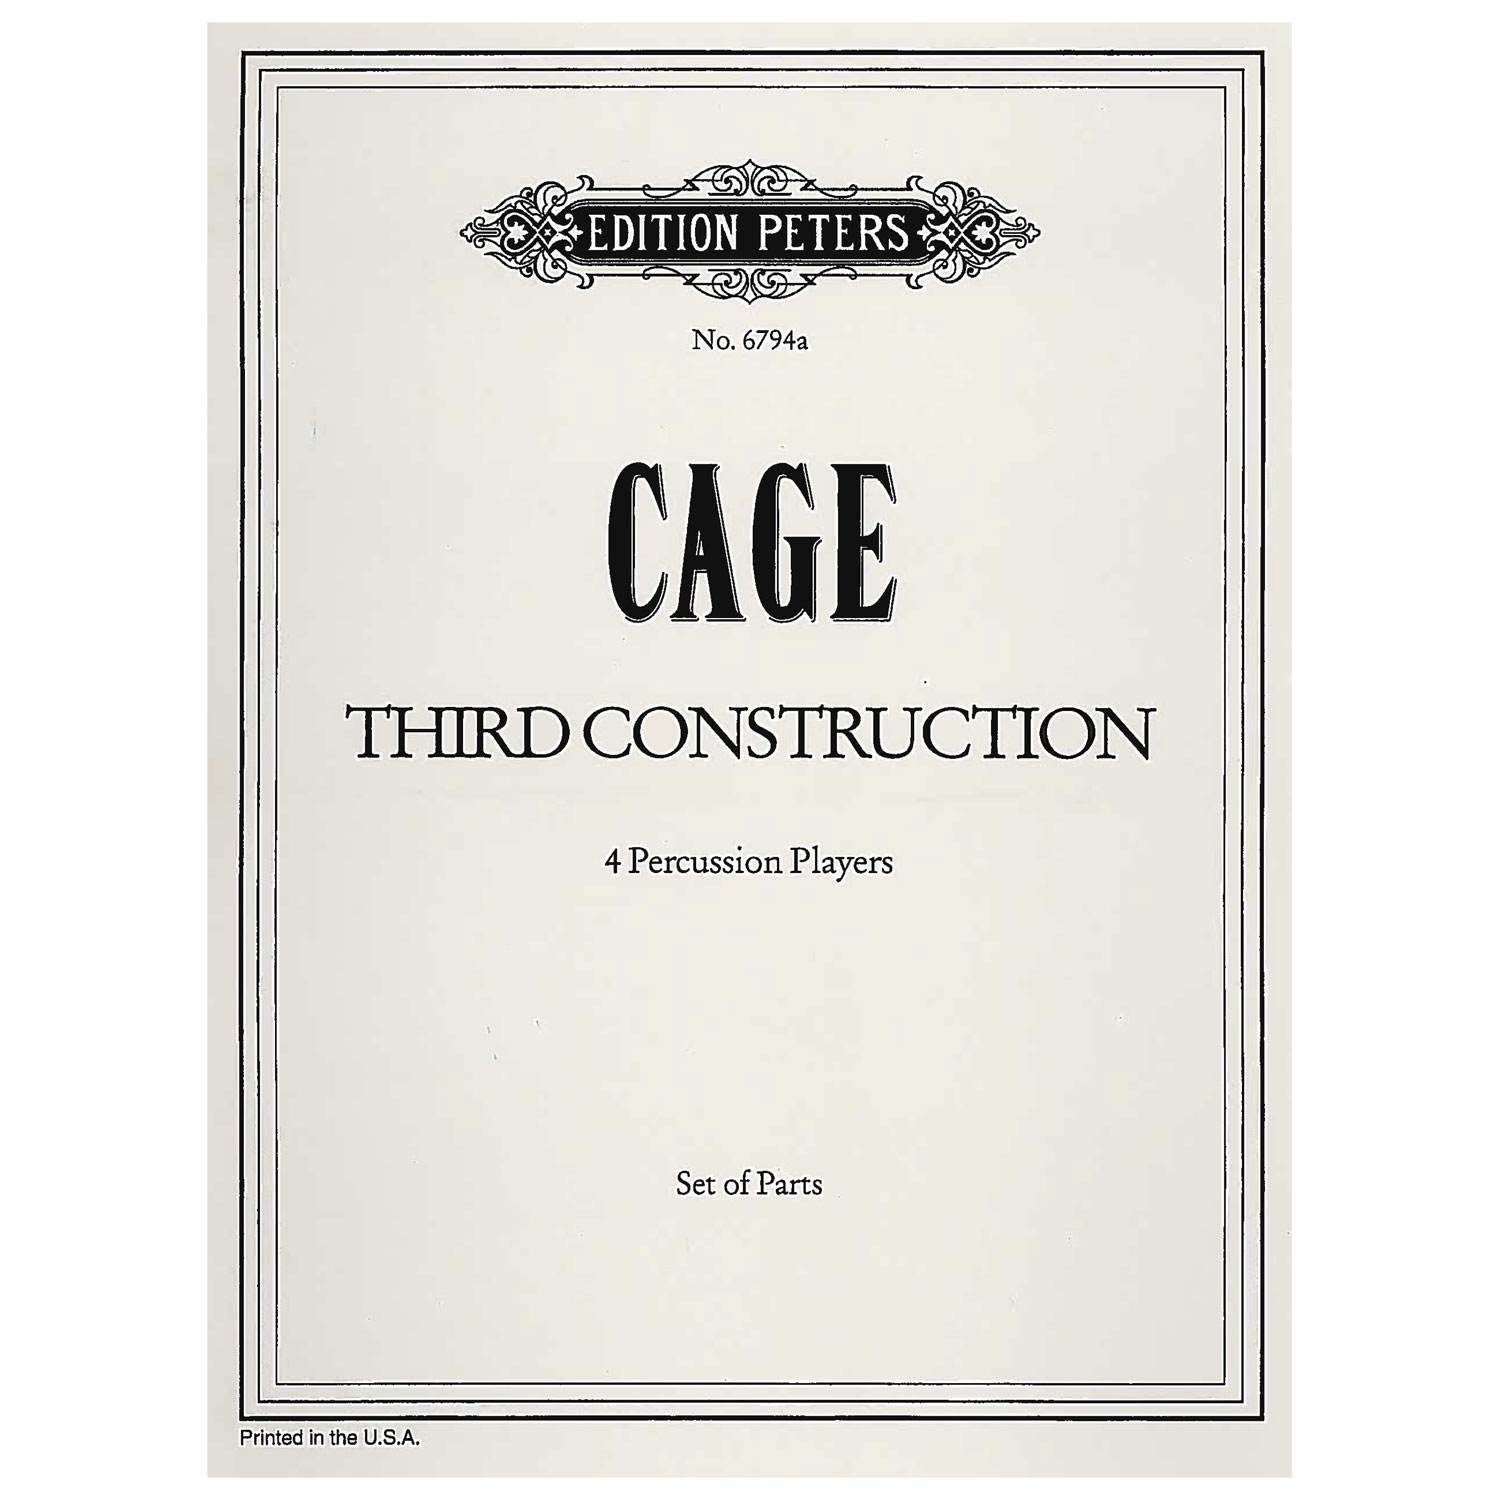 Third Construction by John Cage